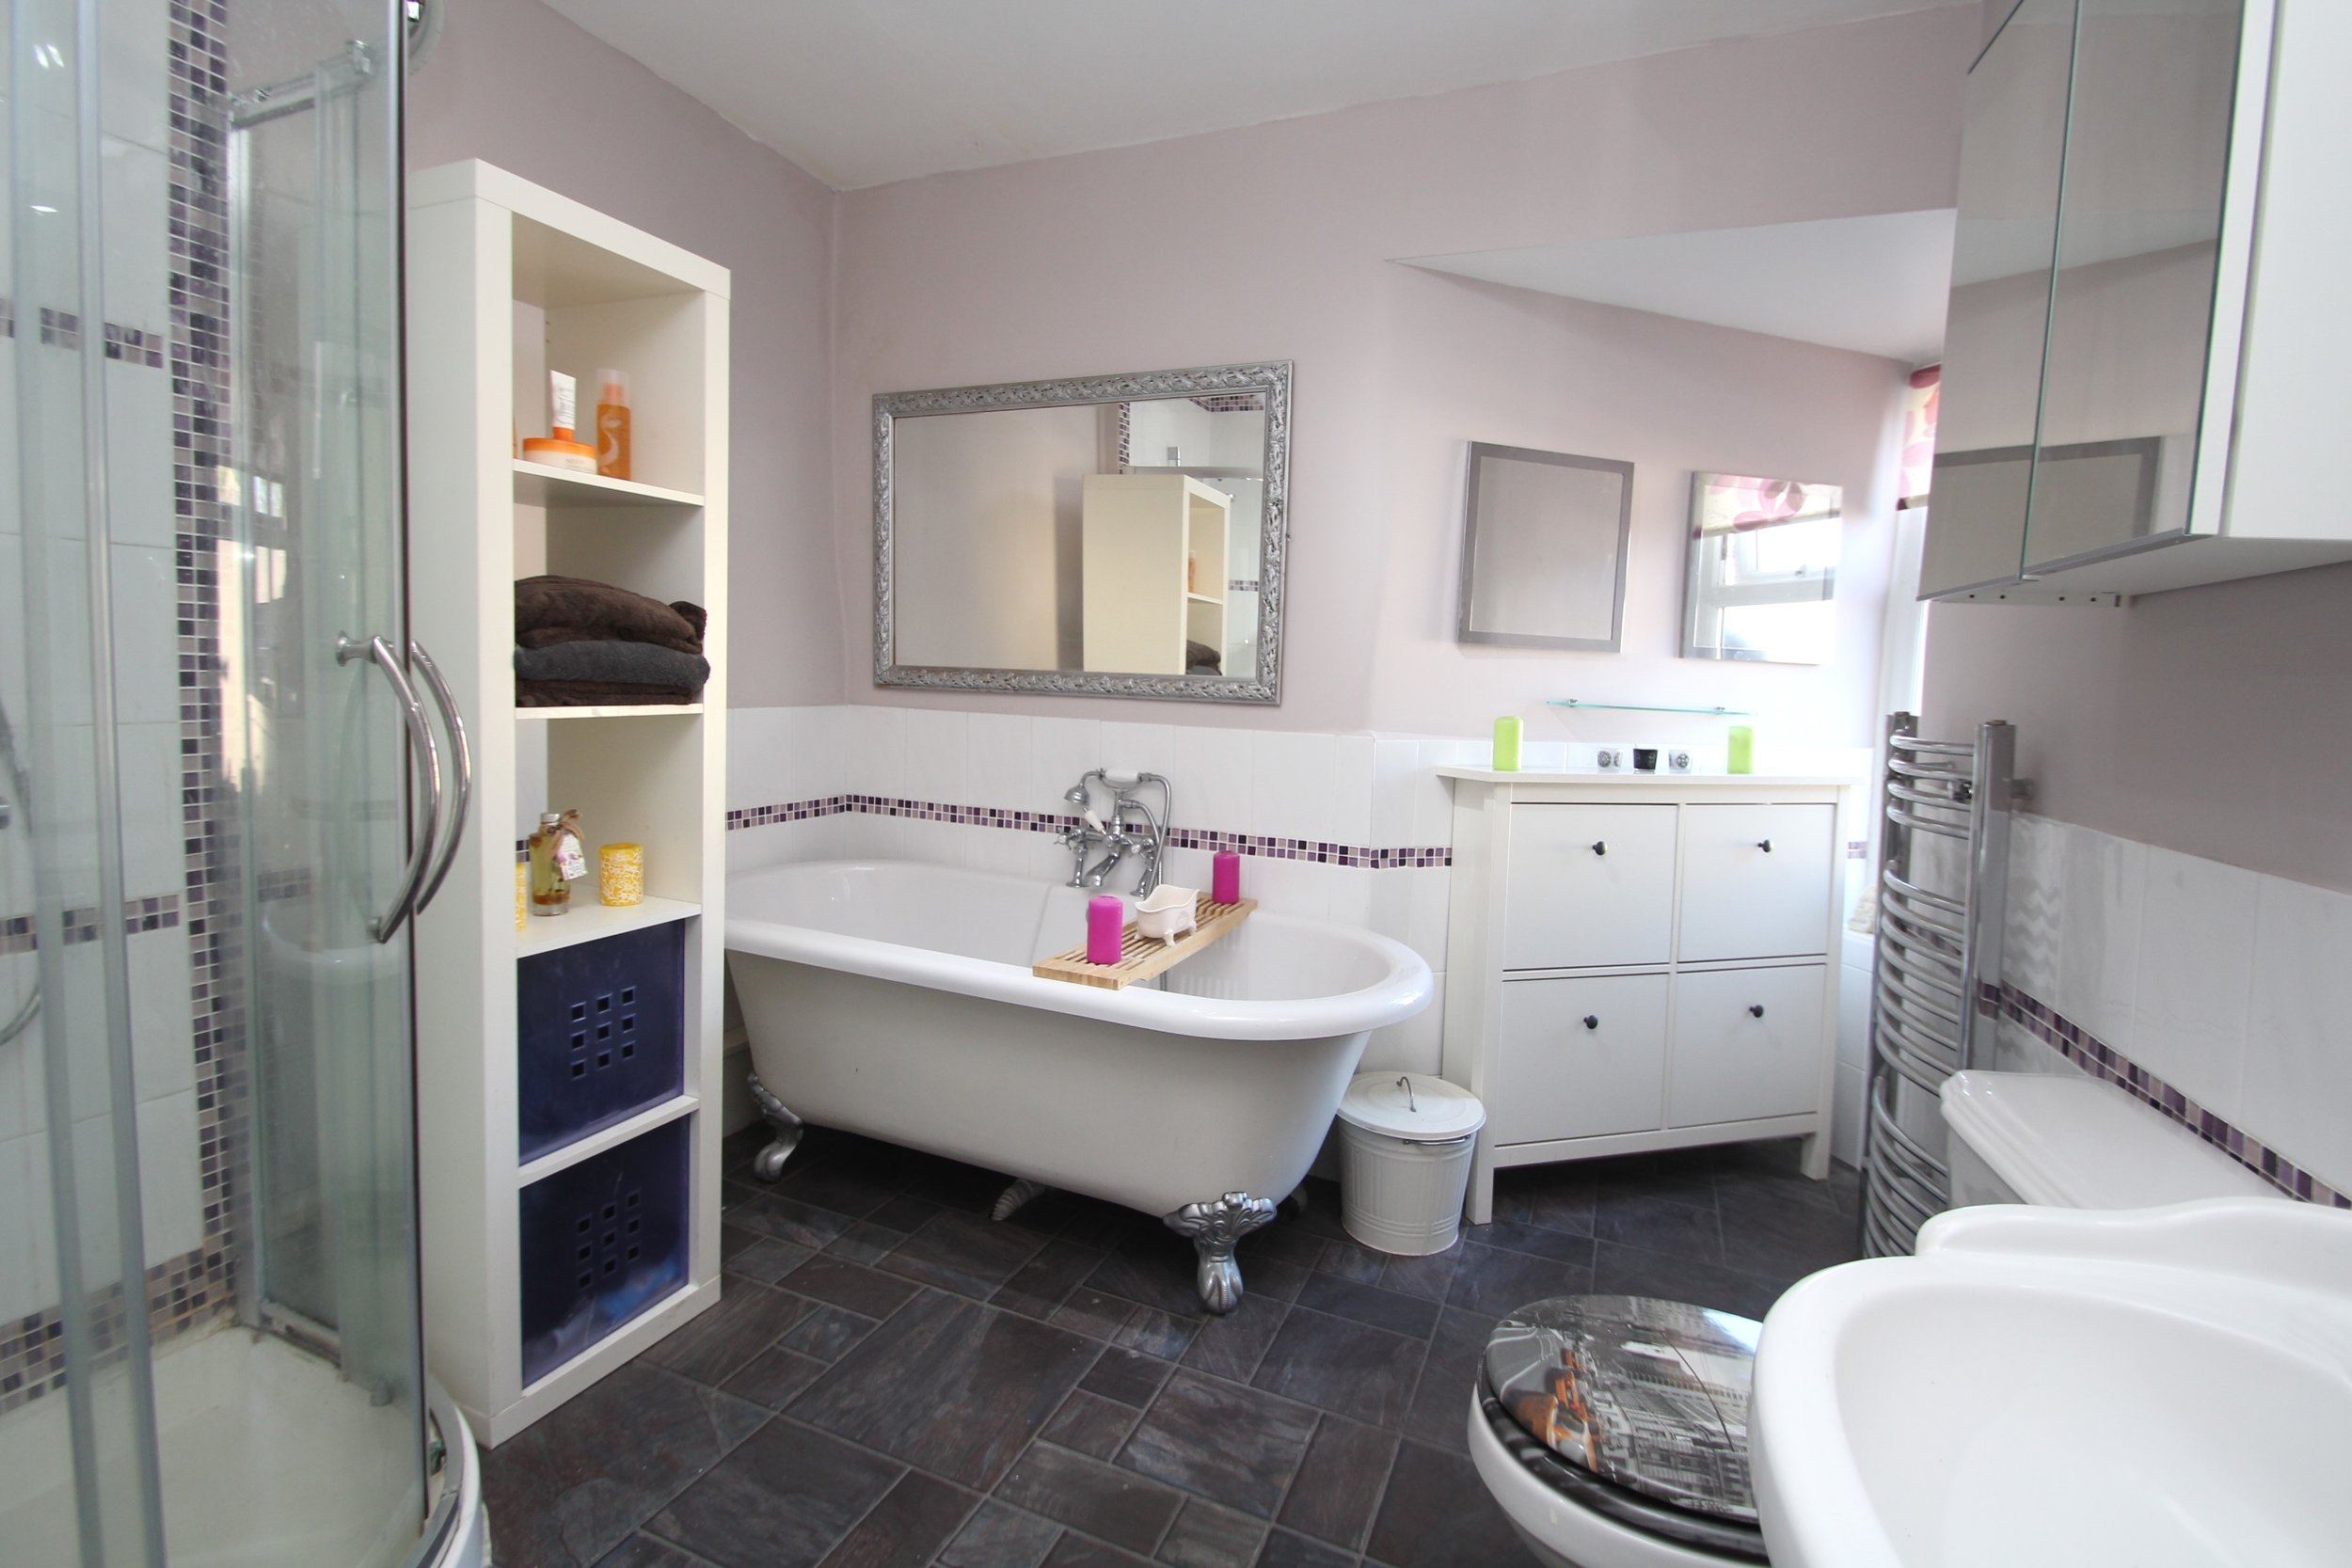 Apartment En-Suite Bathroom